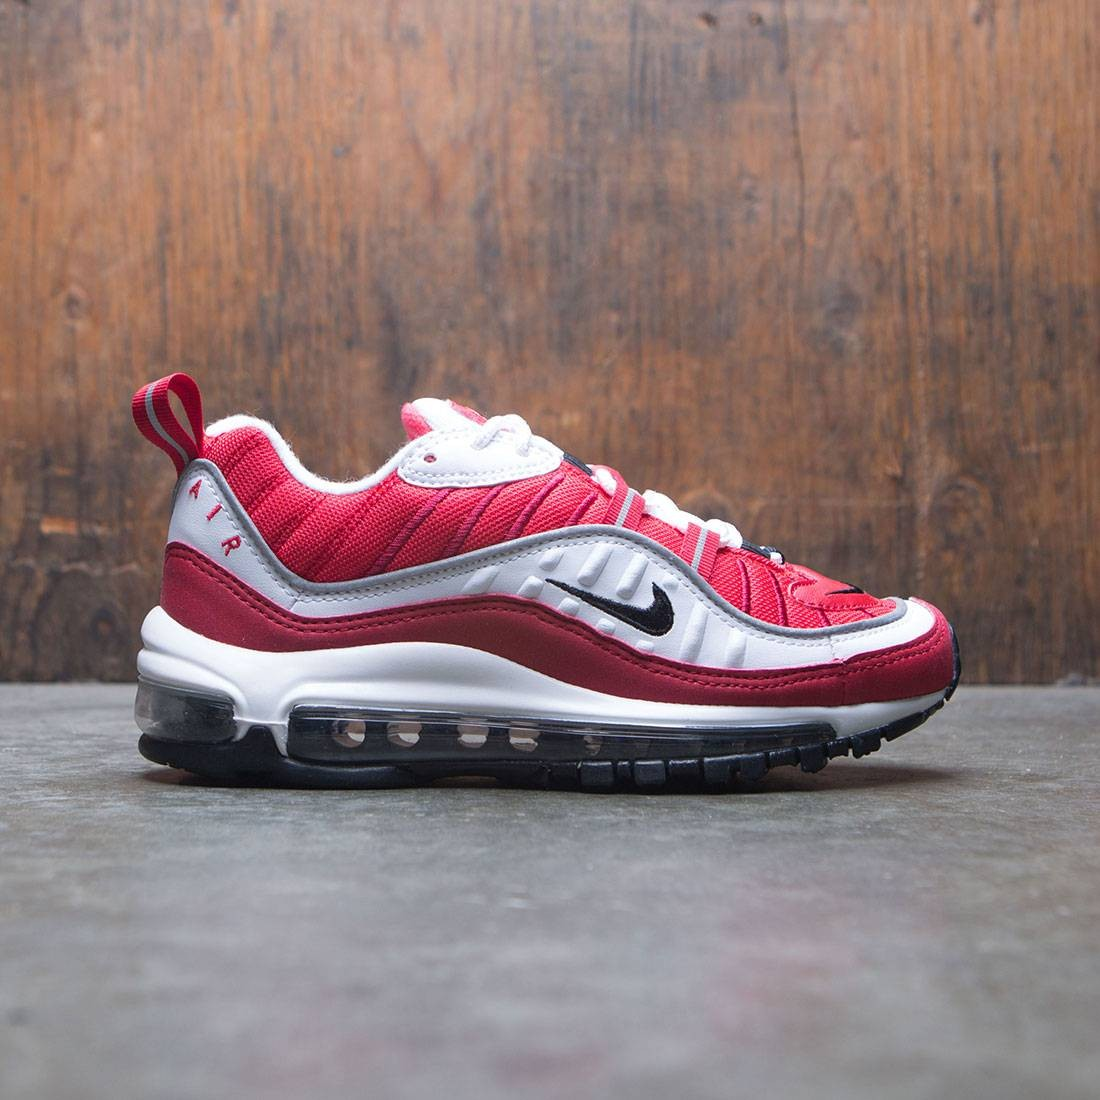 low priced ce781 90308 nike women air max 98 white black gym red reflect silver